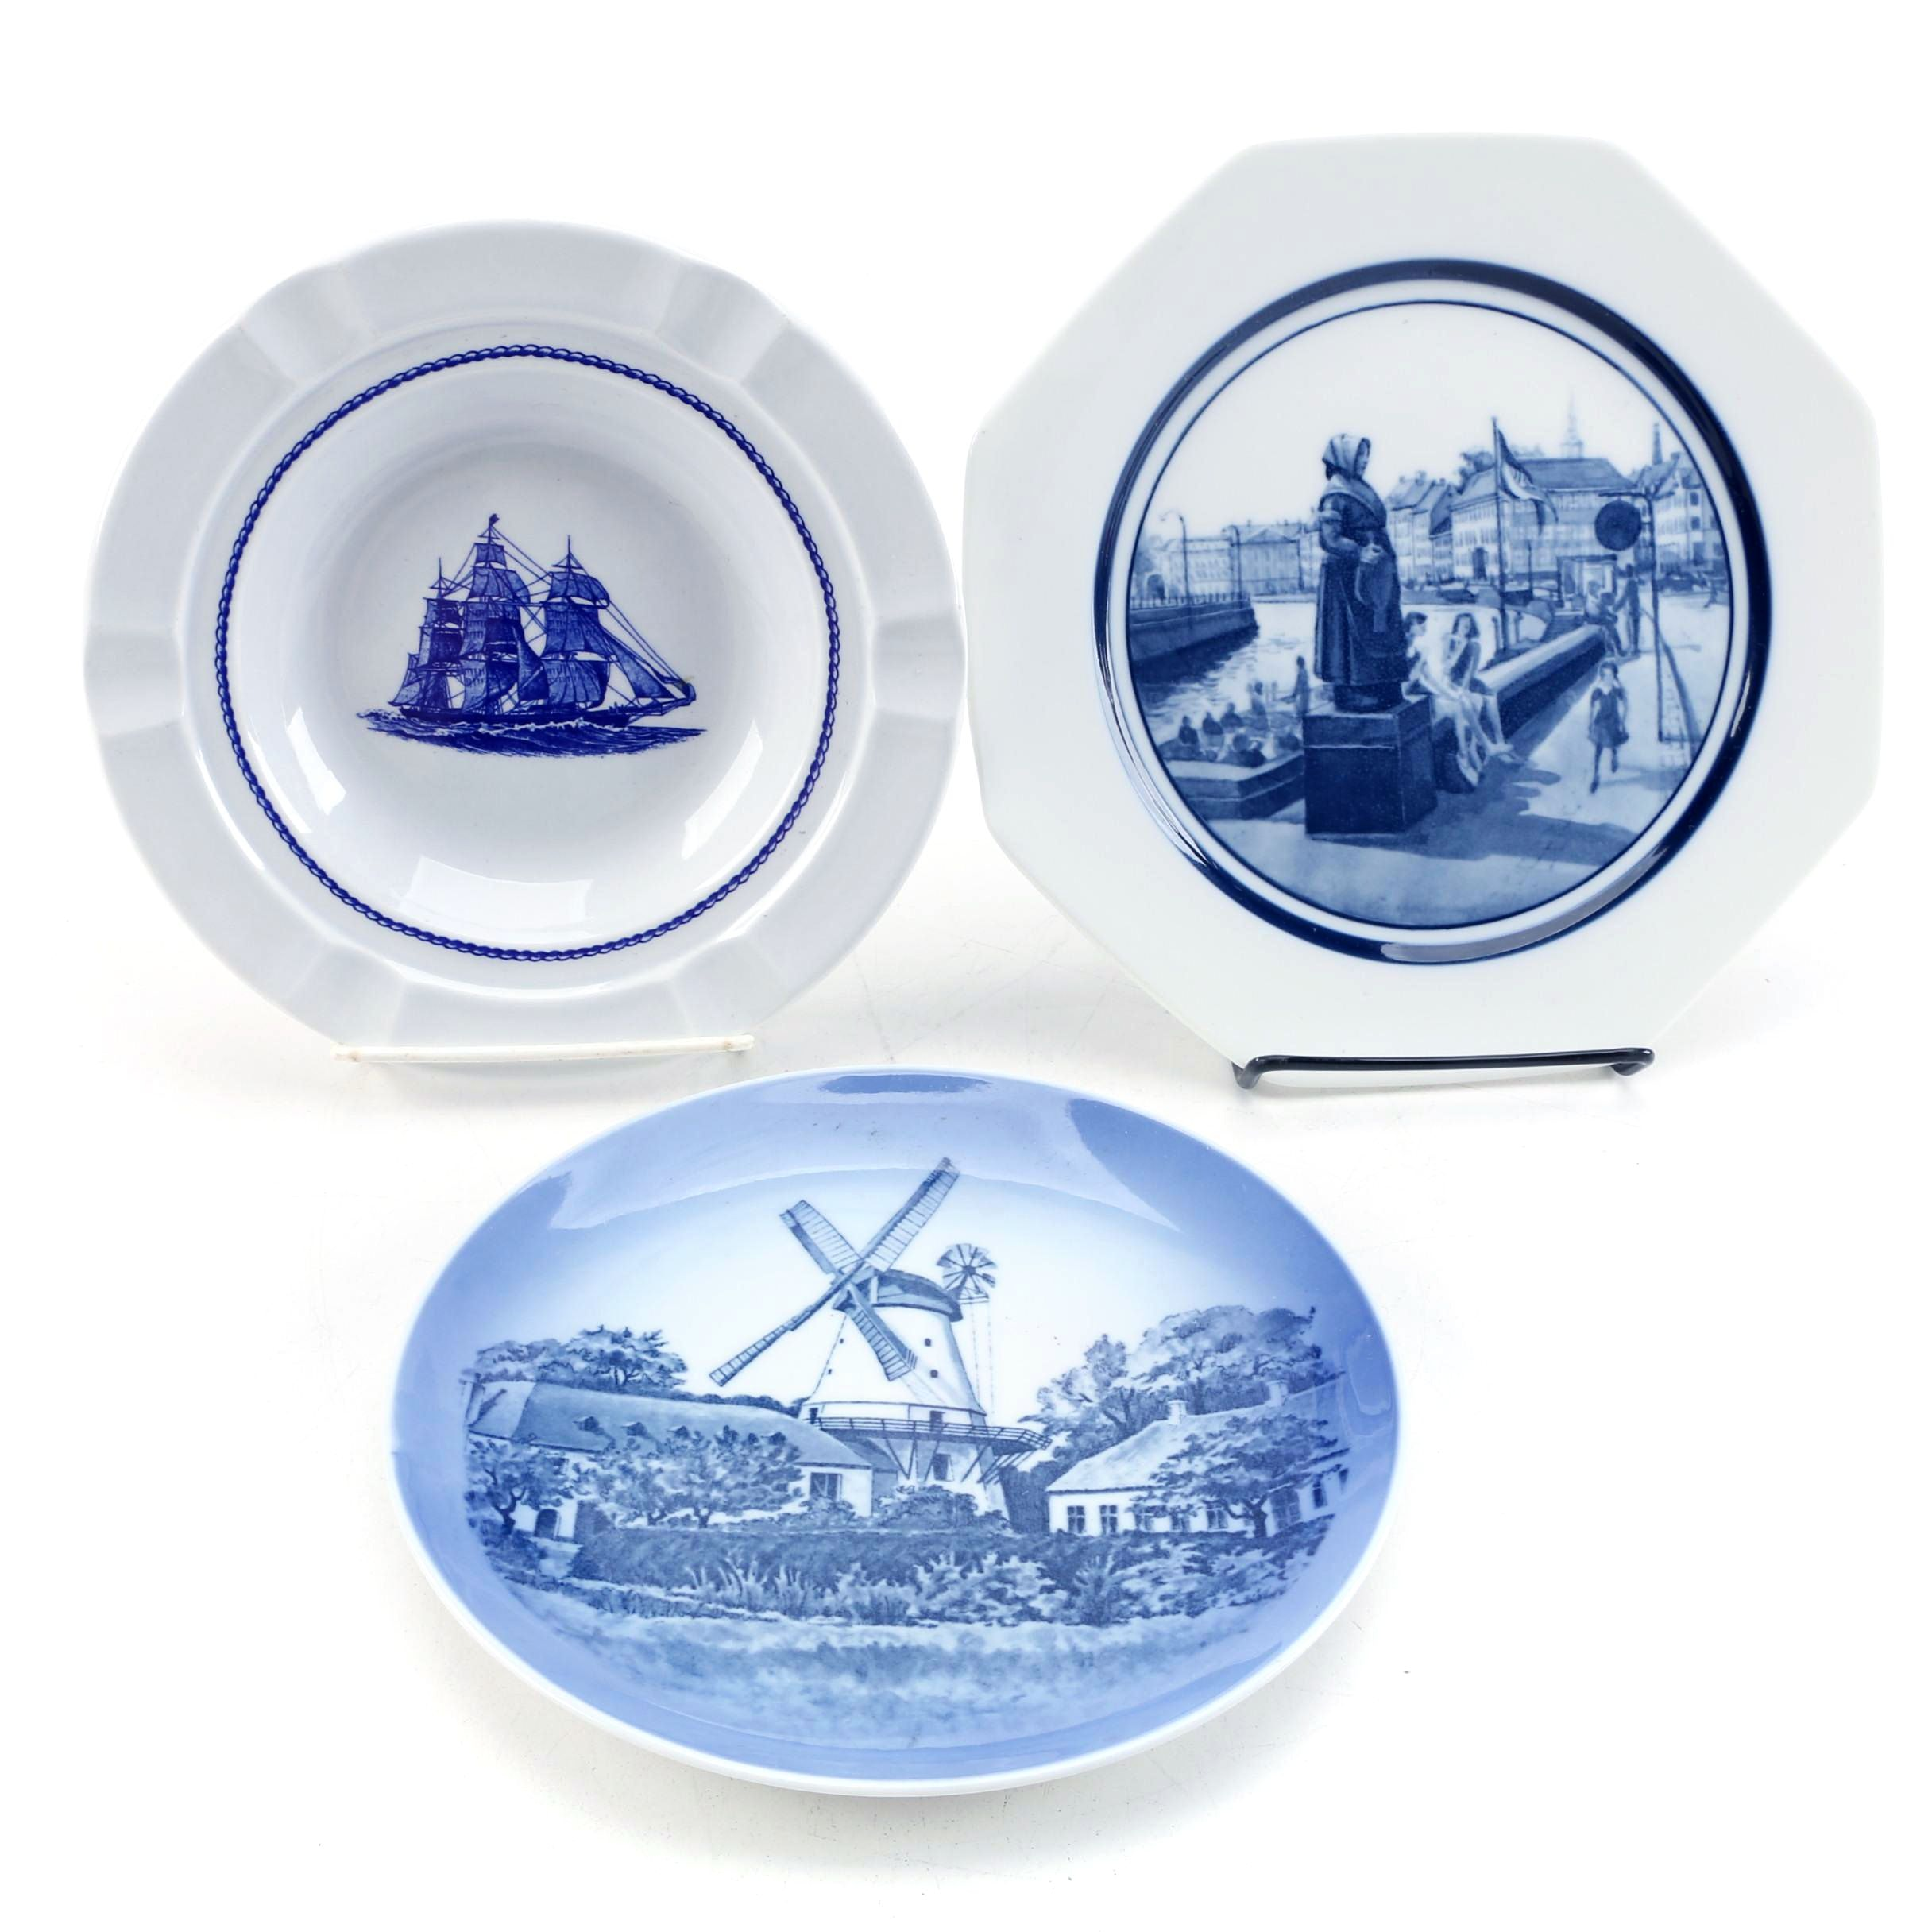 Royal Copenhagen and Wedgwood Porcelain Collector Plates